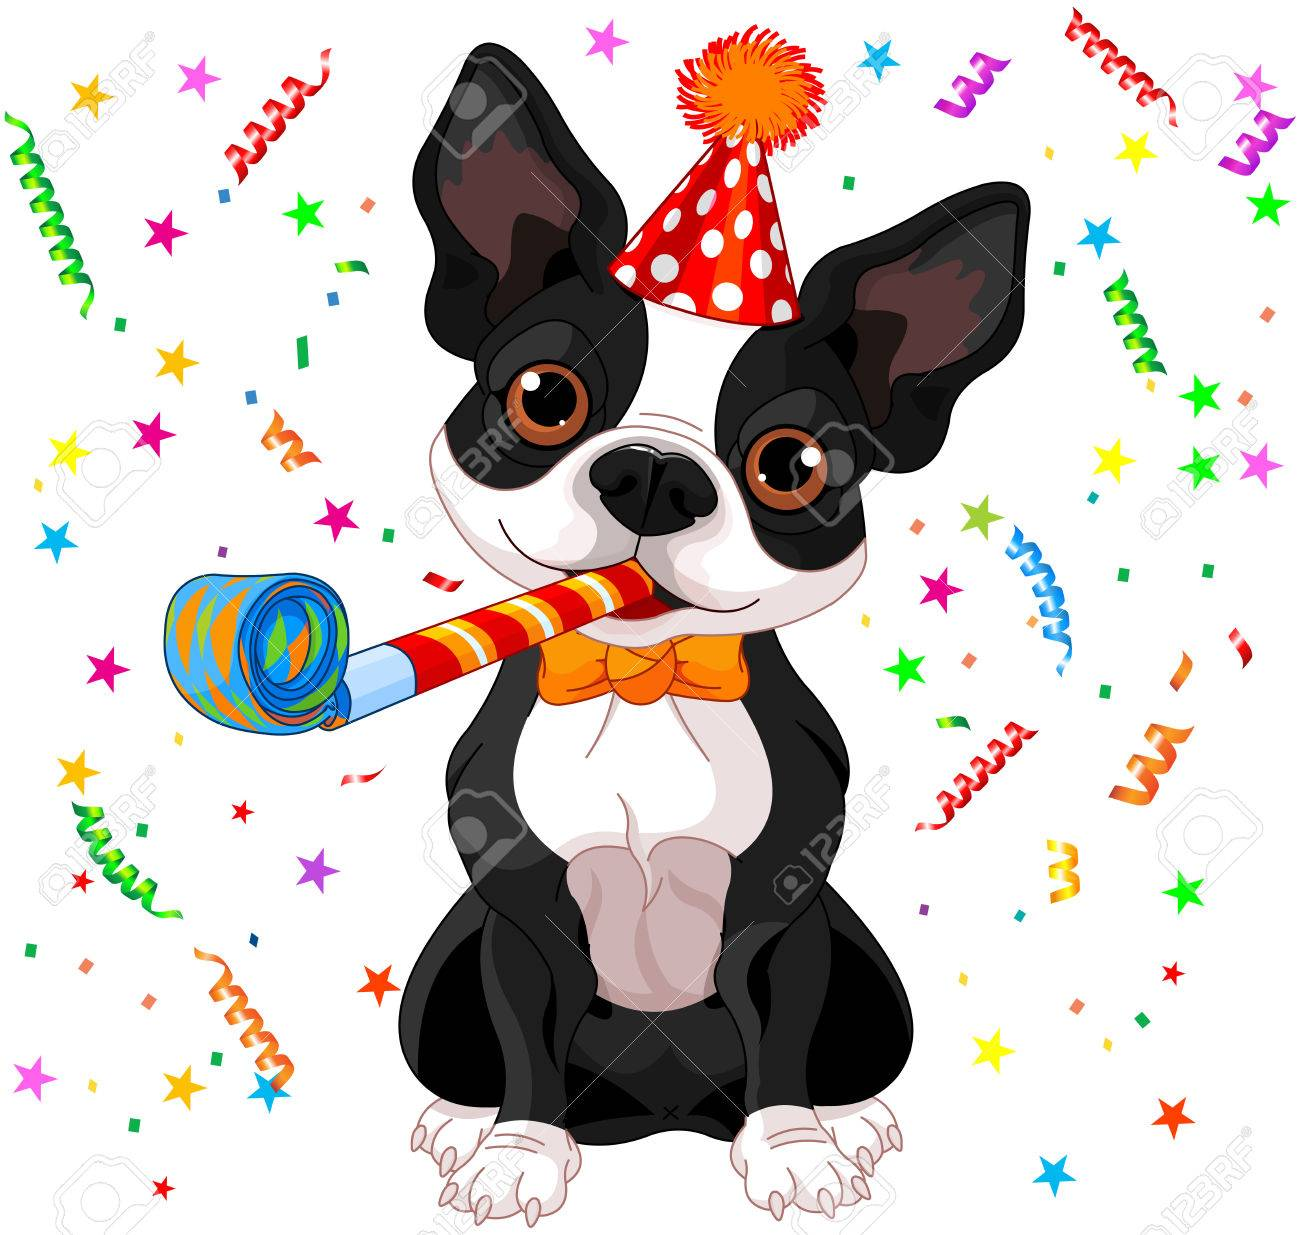 Mon chien m'a mordu: conseils? - Page 8 35588778-illustration-of-cute-boston-terrier-celebrating